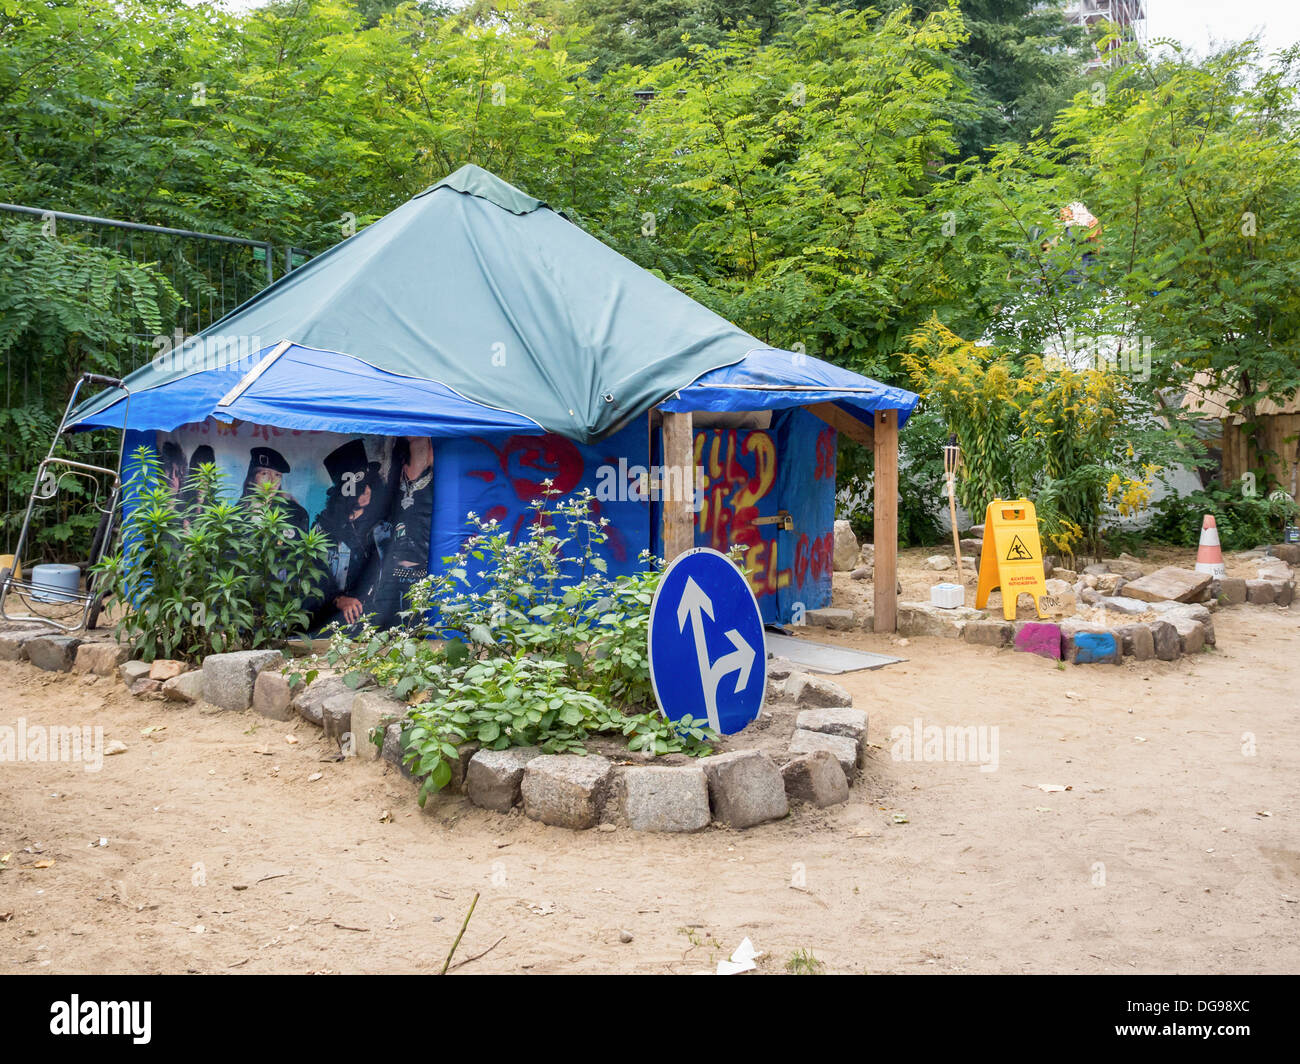 Squatters set up informal tented community using recycled materials to build homes and gardens - Berlin & Squatters set up informal tented community using recycled ...